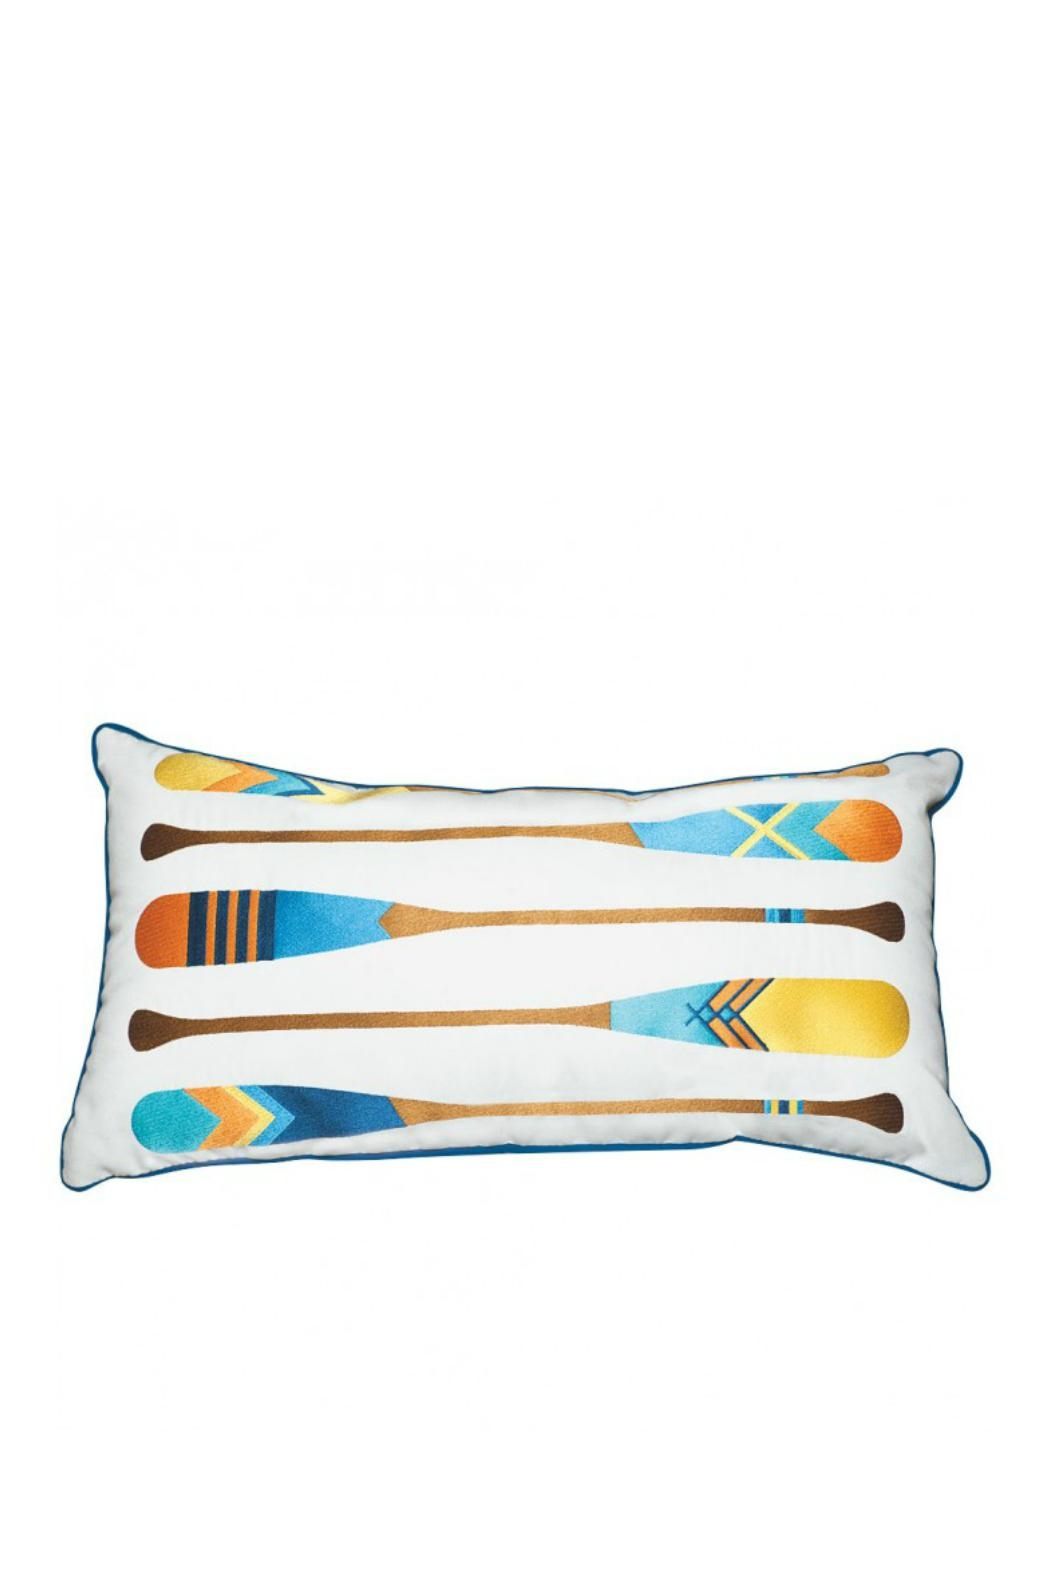 Rightside Design Oars Lumber Pillow - Main Image